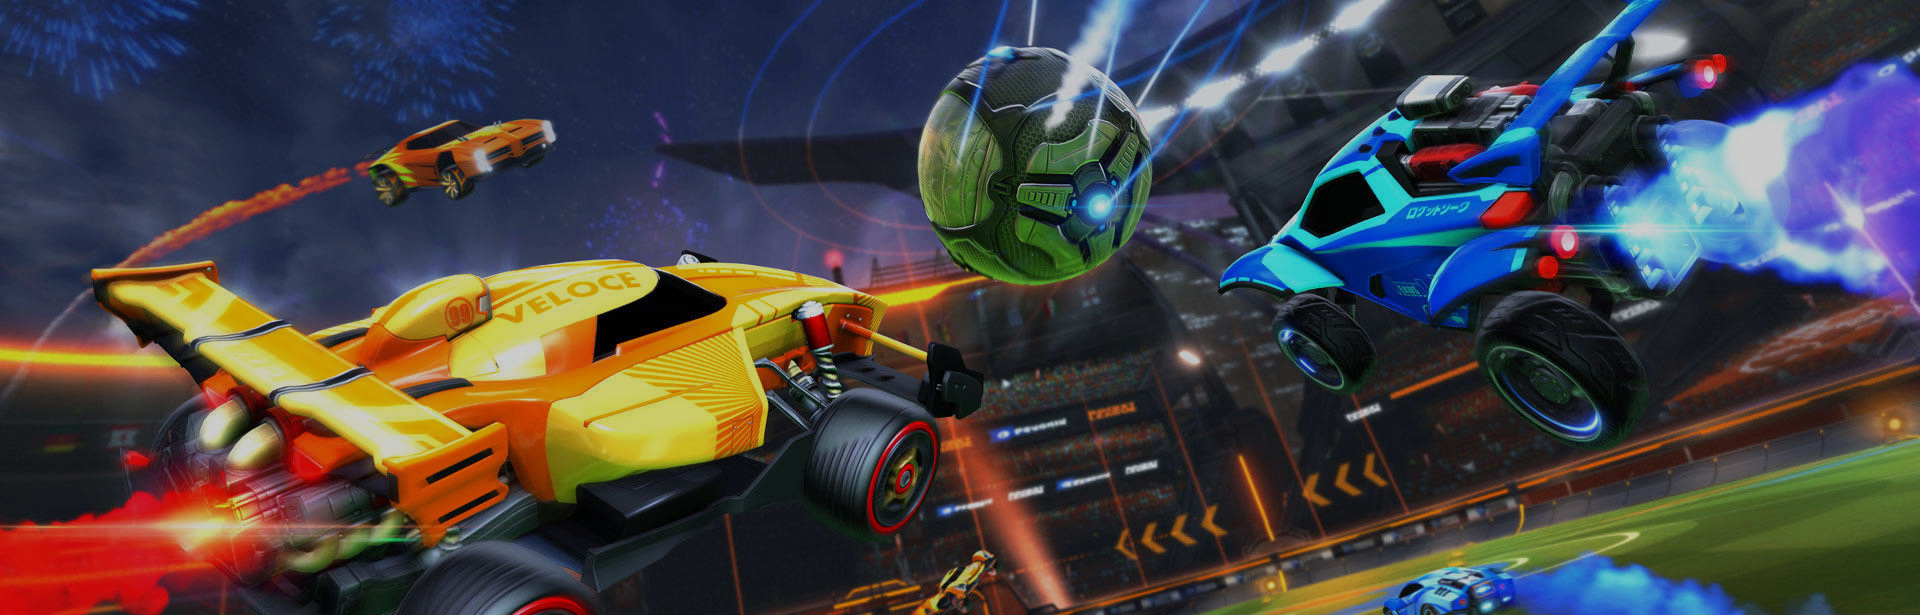 Improving Your Aim in Rocket League header